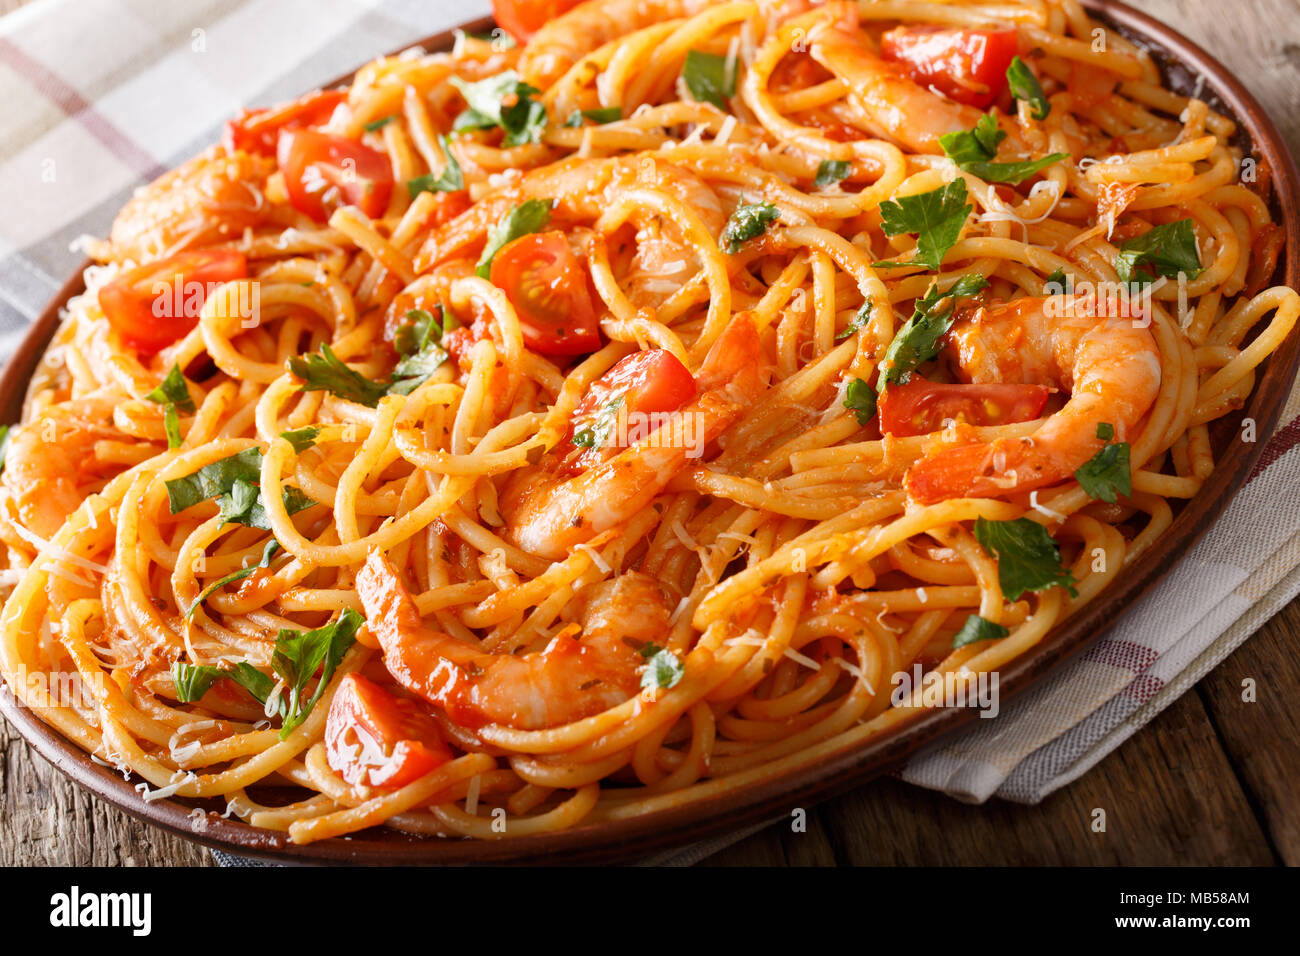 Tasty Italian spaghetti pasta with prawns, parmesan and herbs in tomato fra diavolo sauce close-up on a plate. horizontal - Stock Image